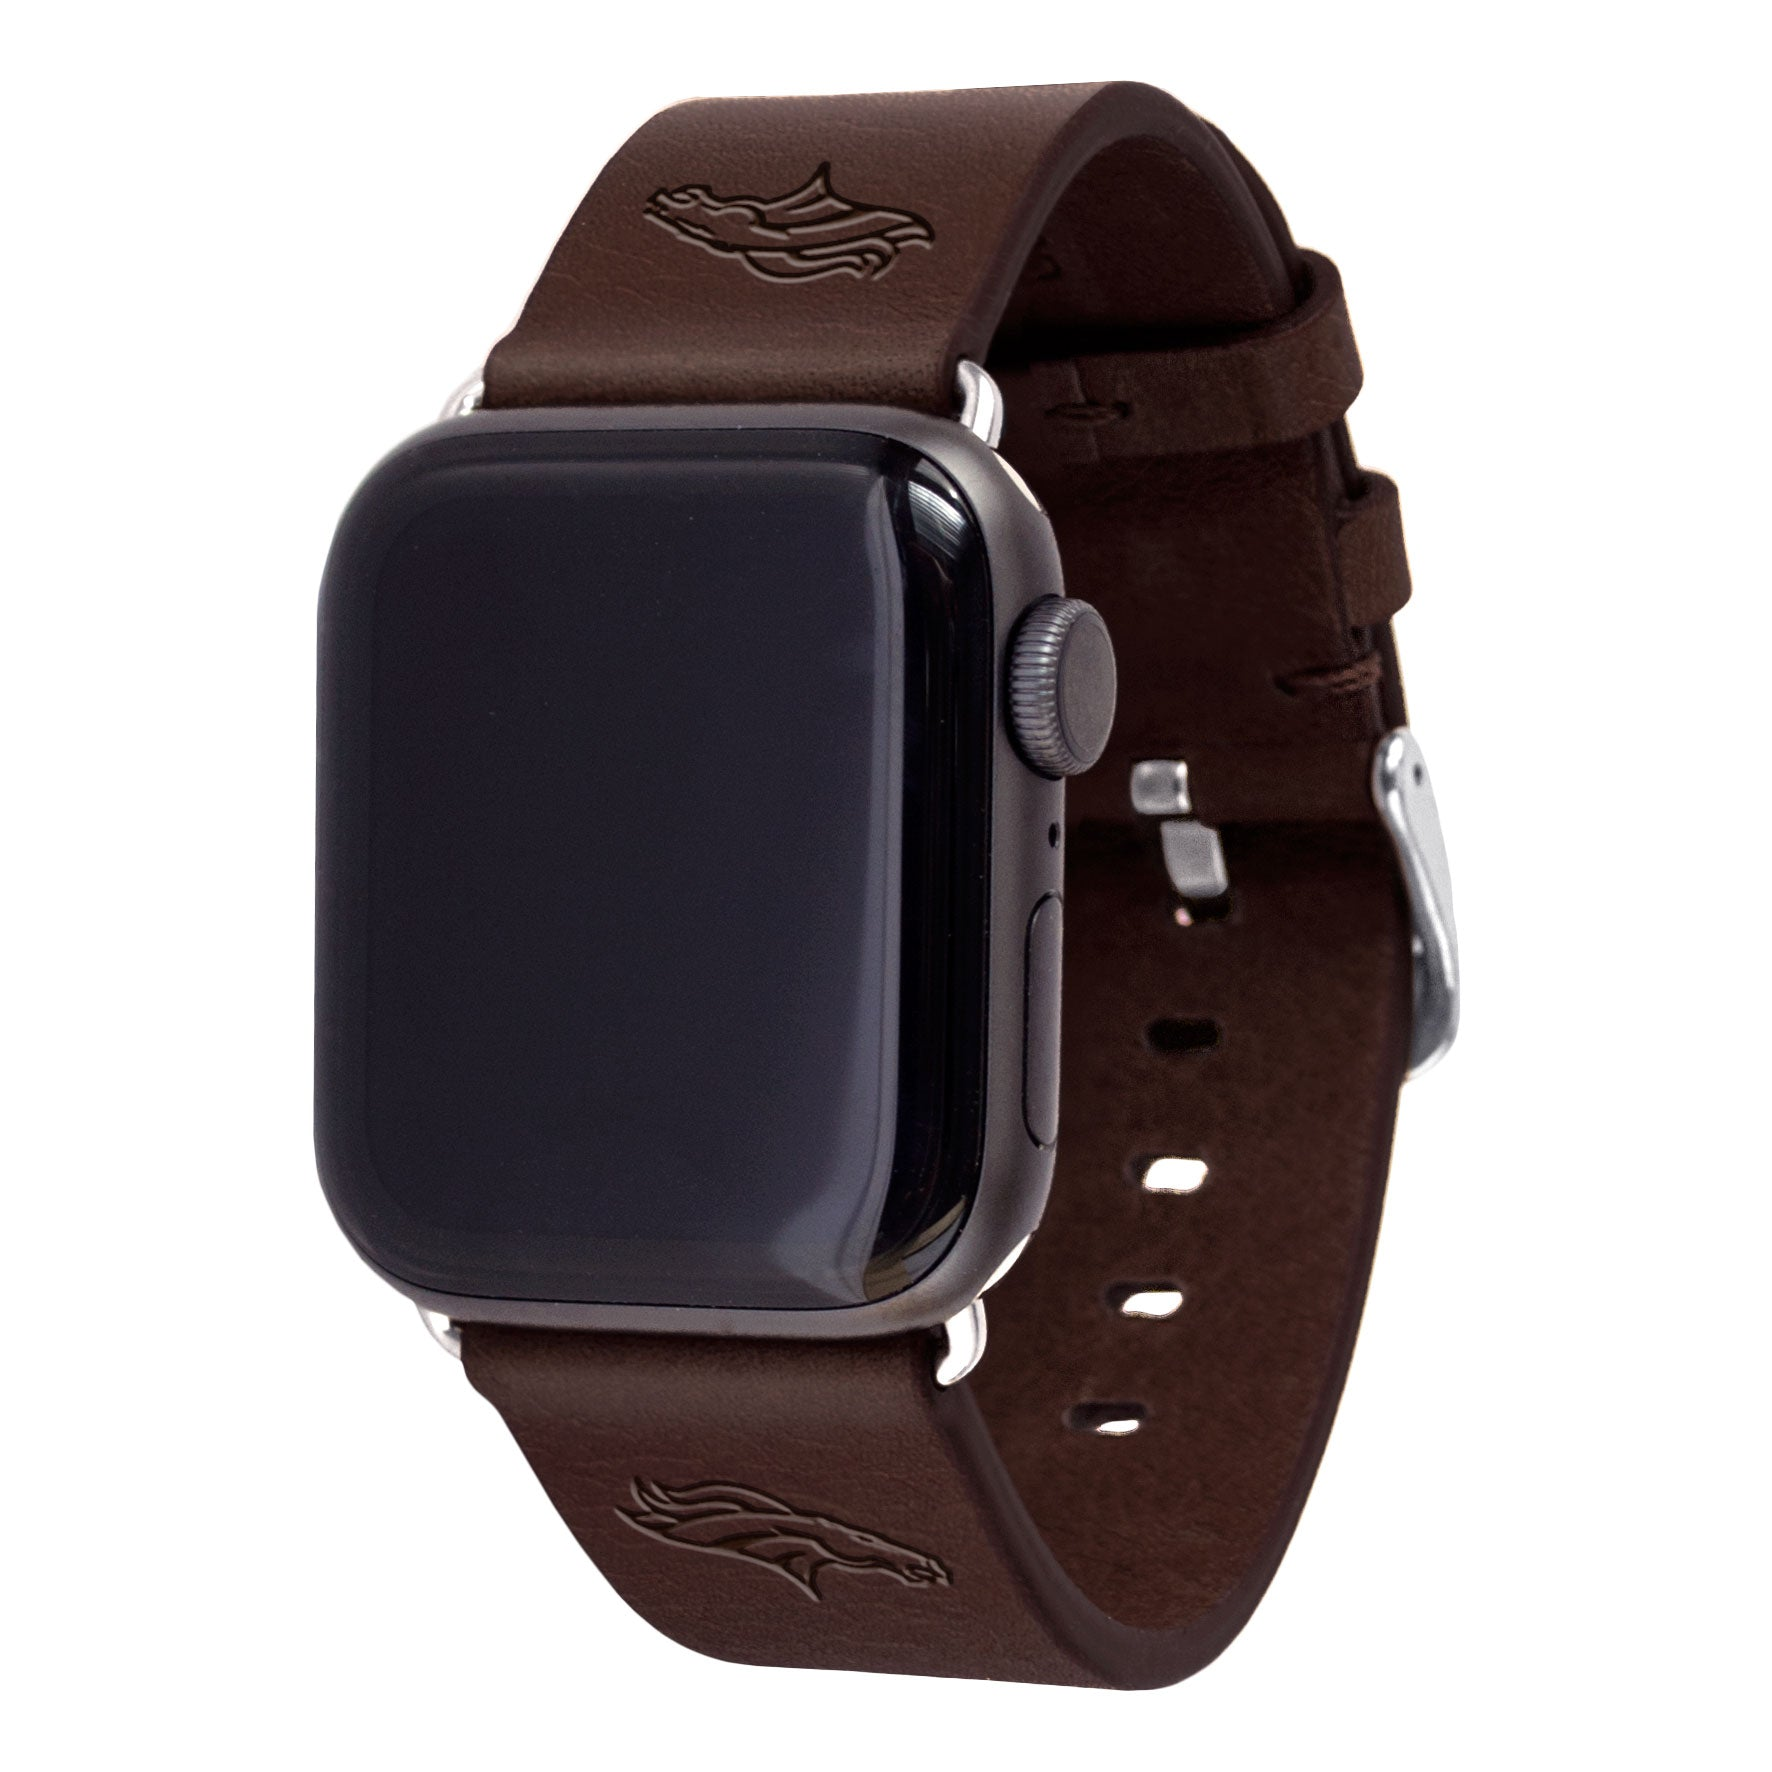 Denver Broncos Leather Apple Watch Band - AffinityBands